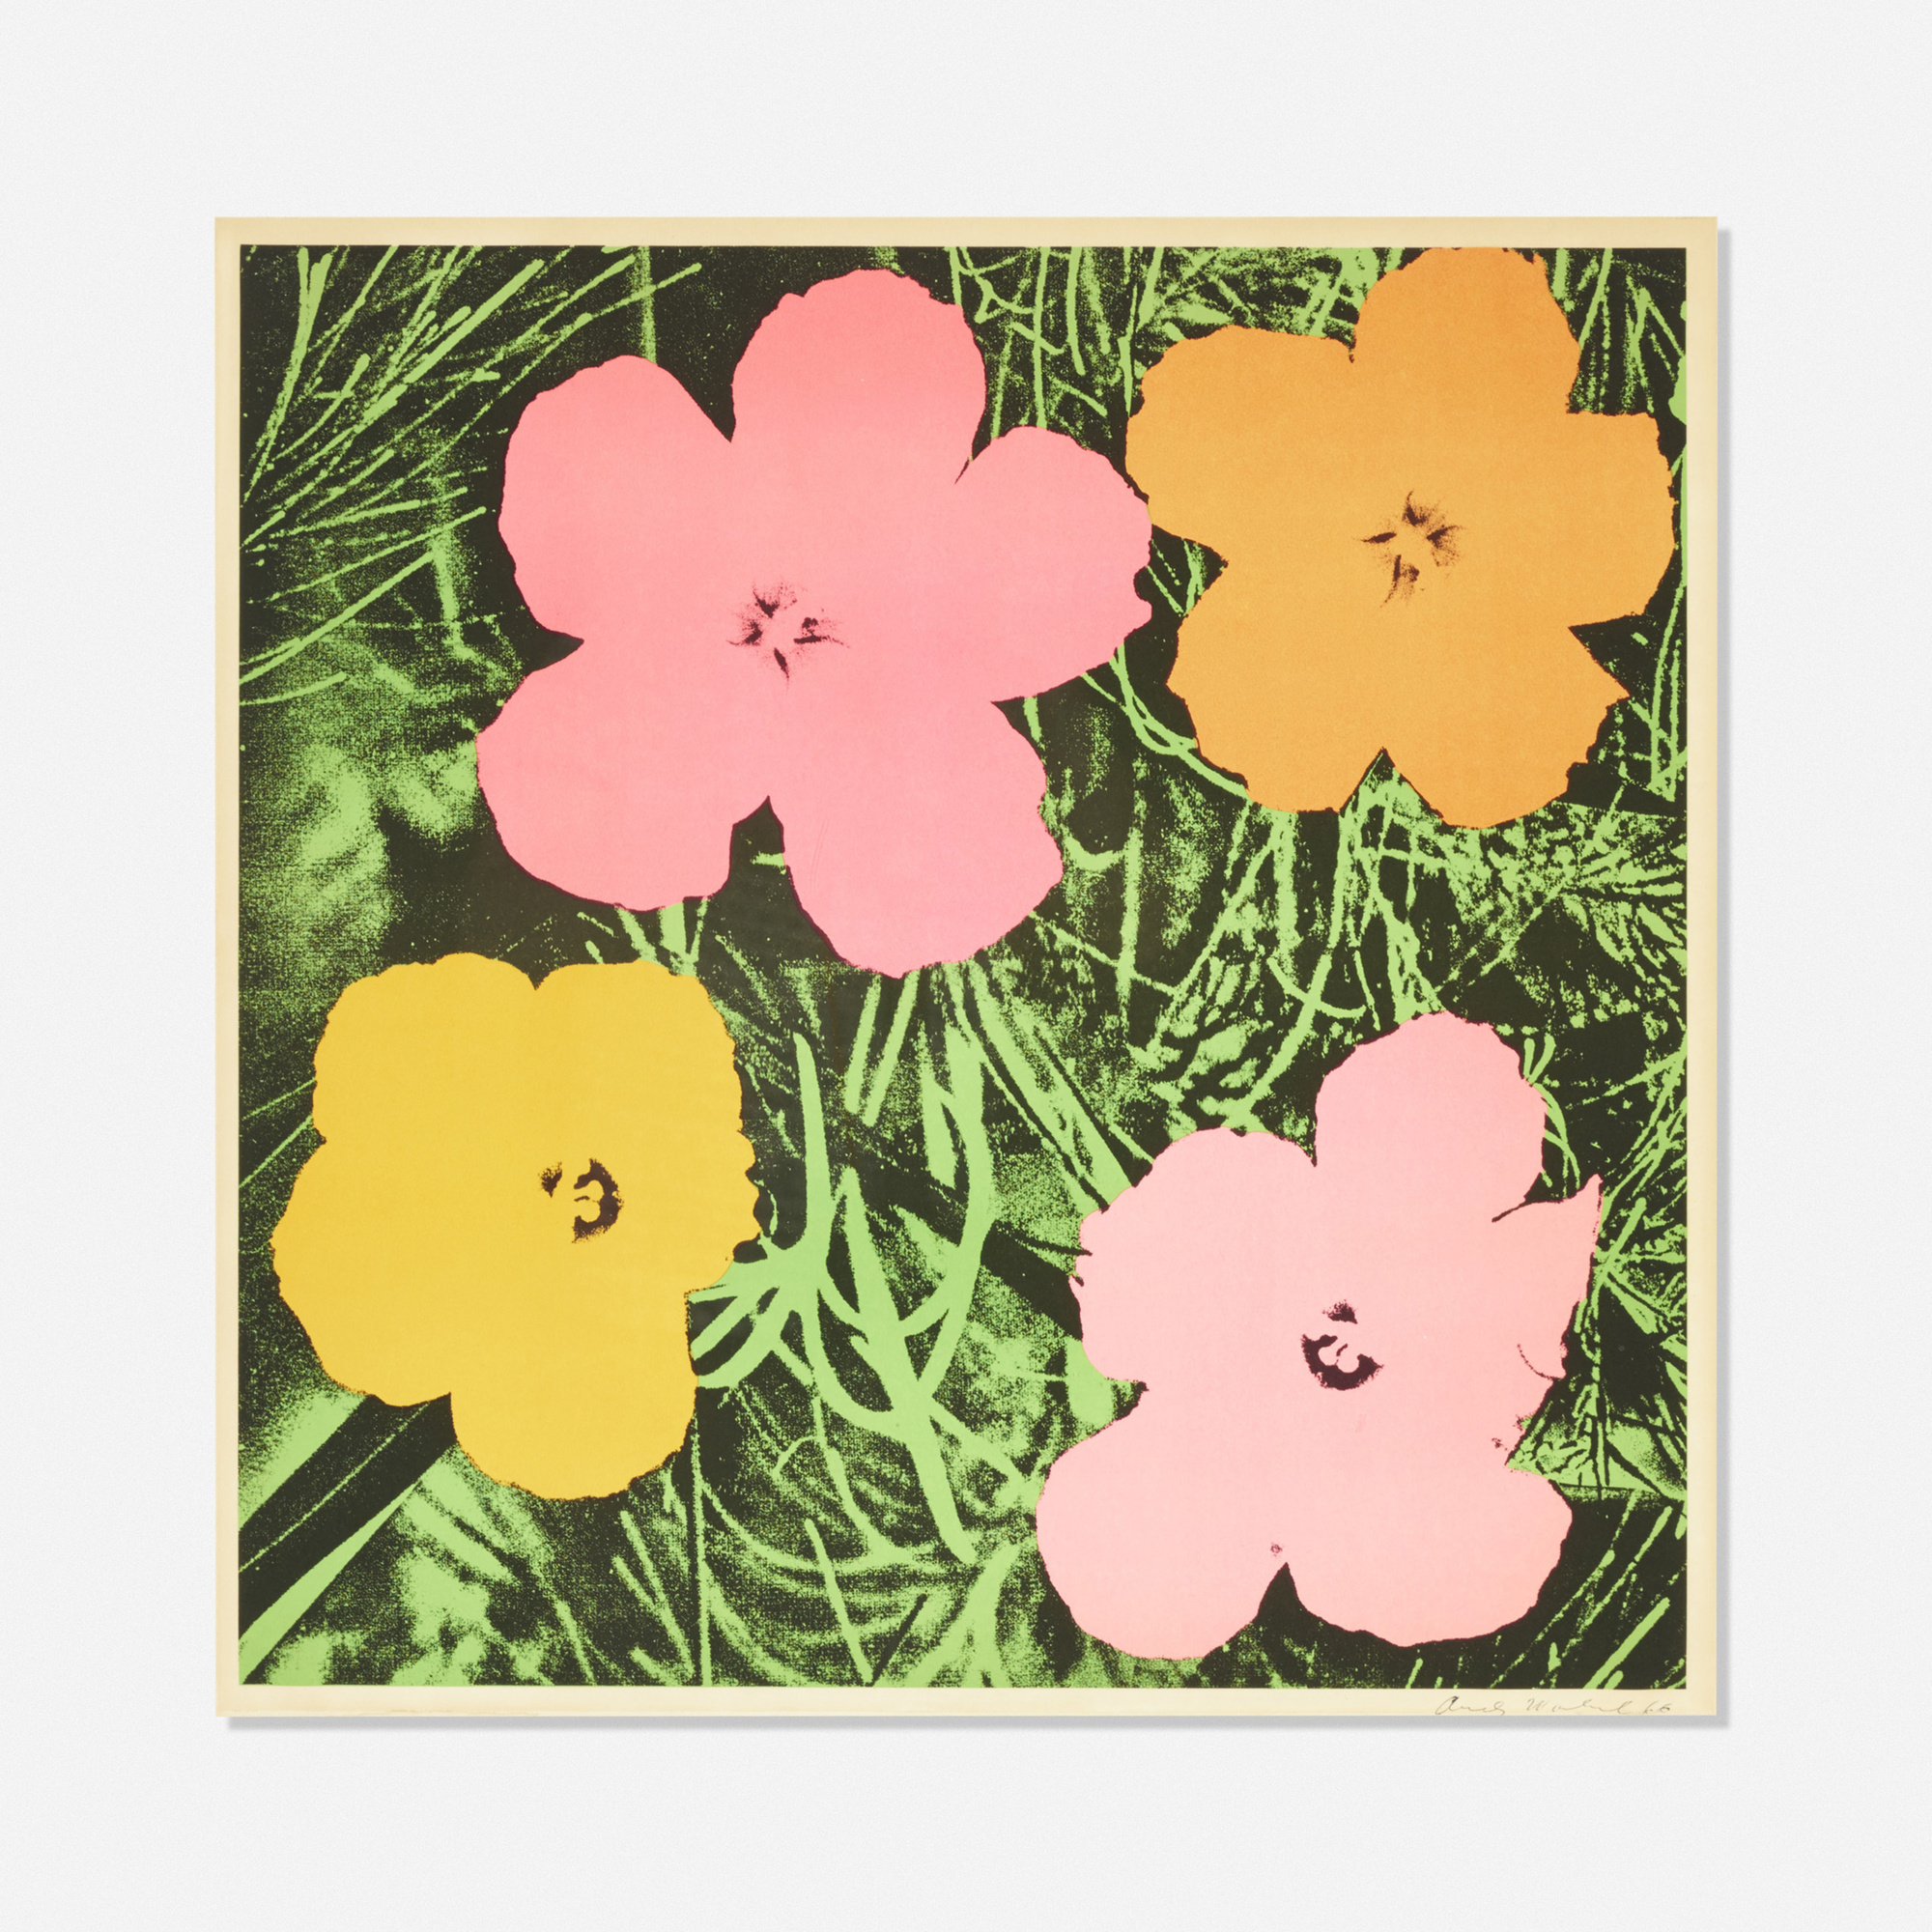 204: Andy Warhol / Flowers (1 of 1)